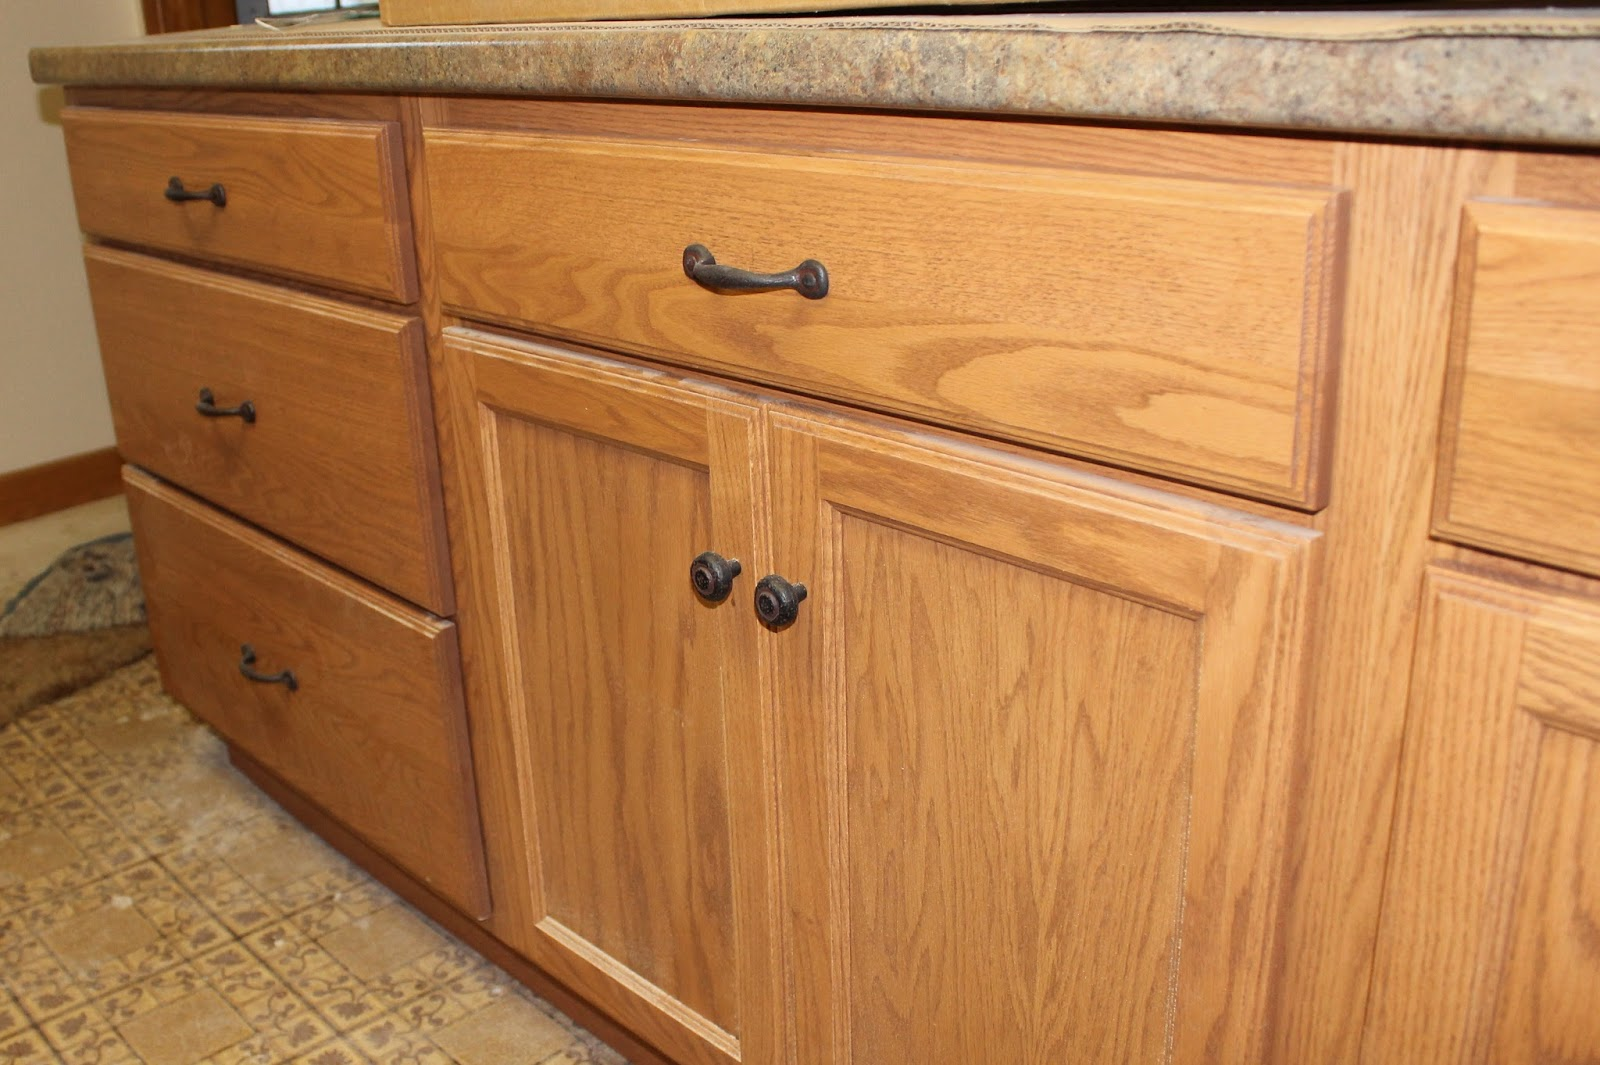 Hardware Furniture Handle Kitchen Handles Door Knobs And Handles